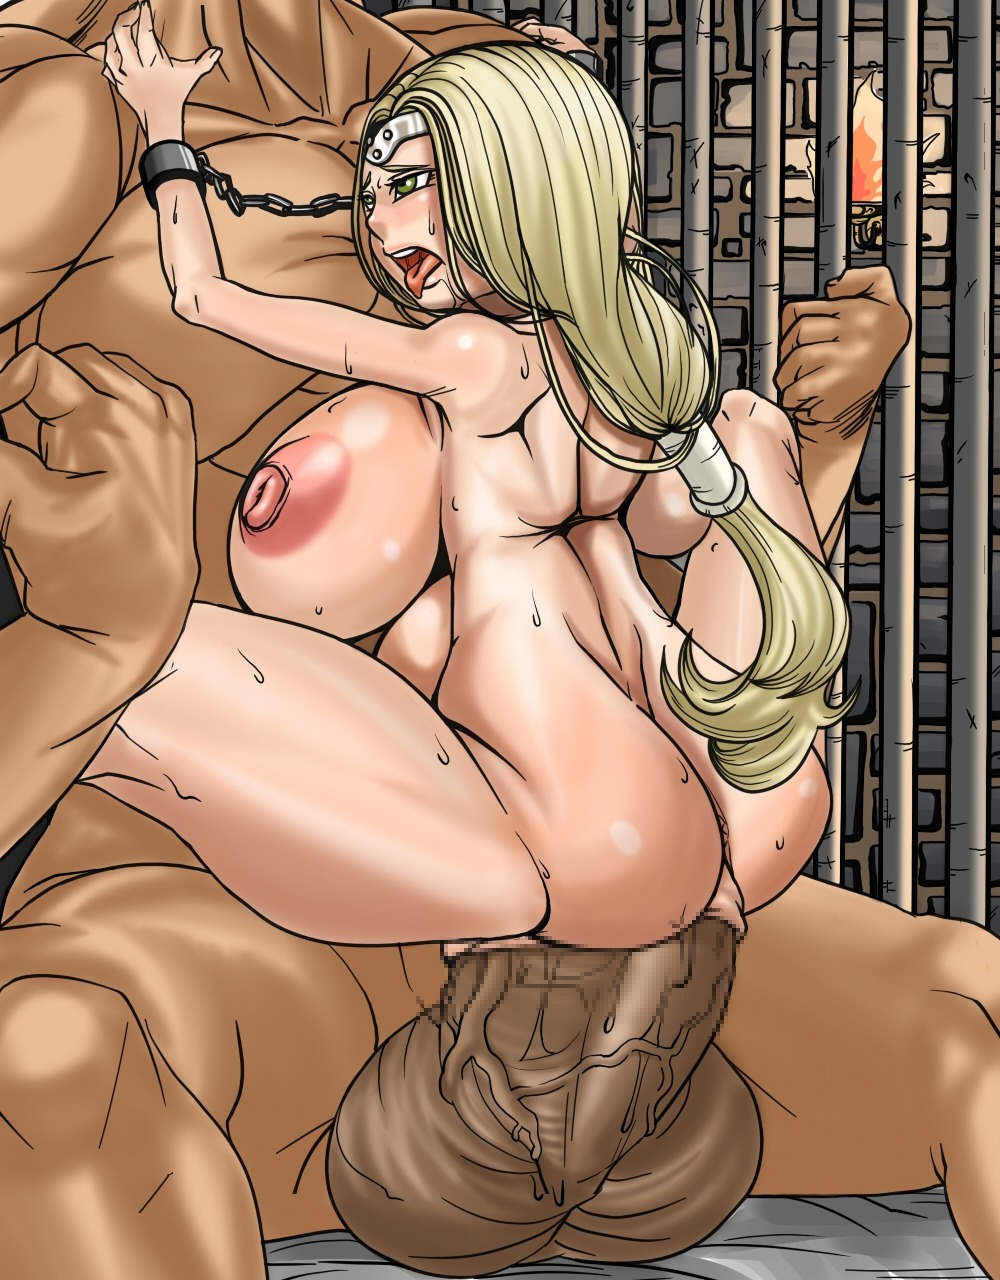 Xxx cartoon porn extreme sex streaming